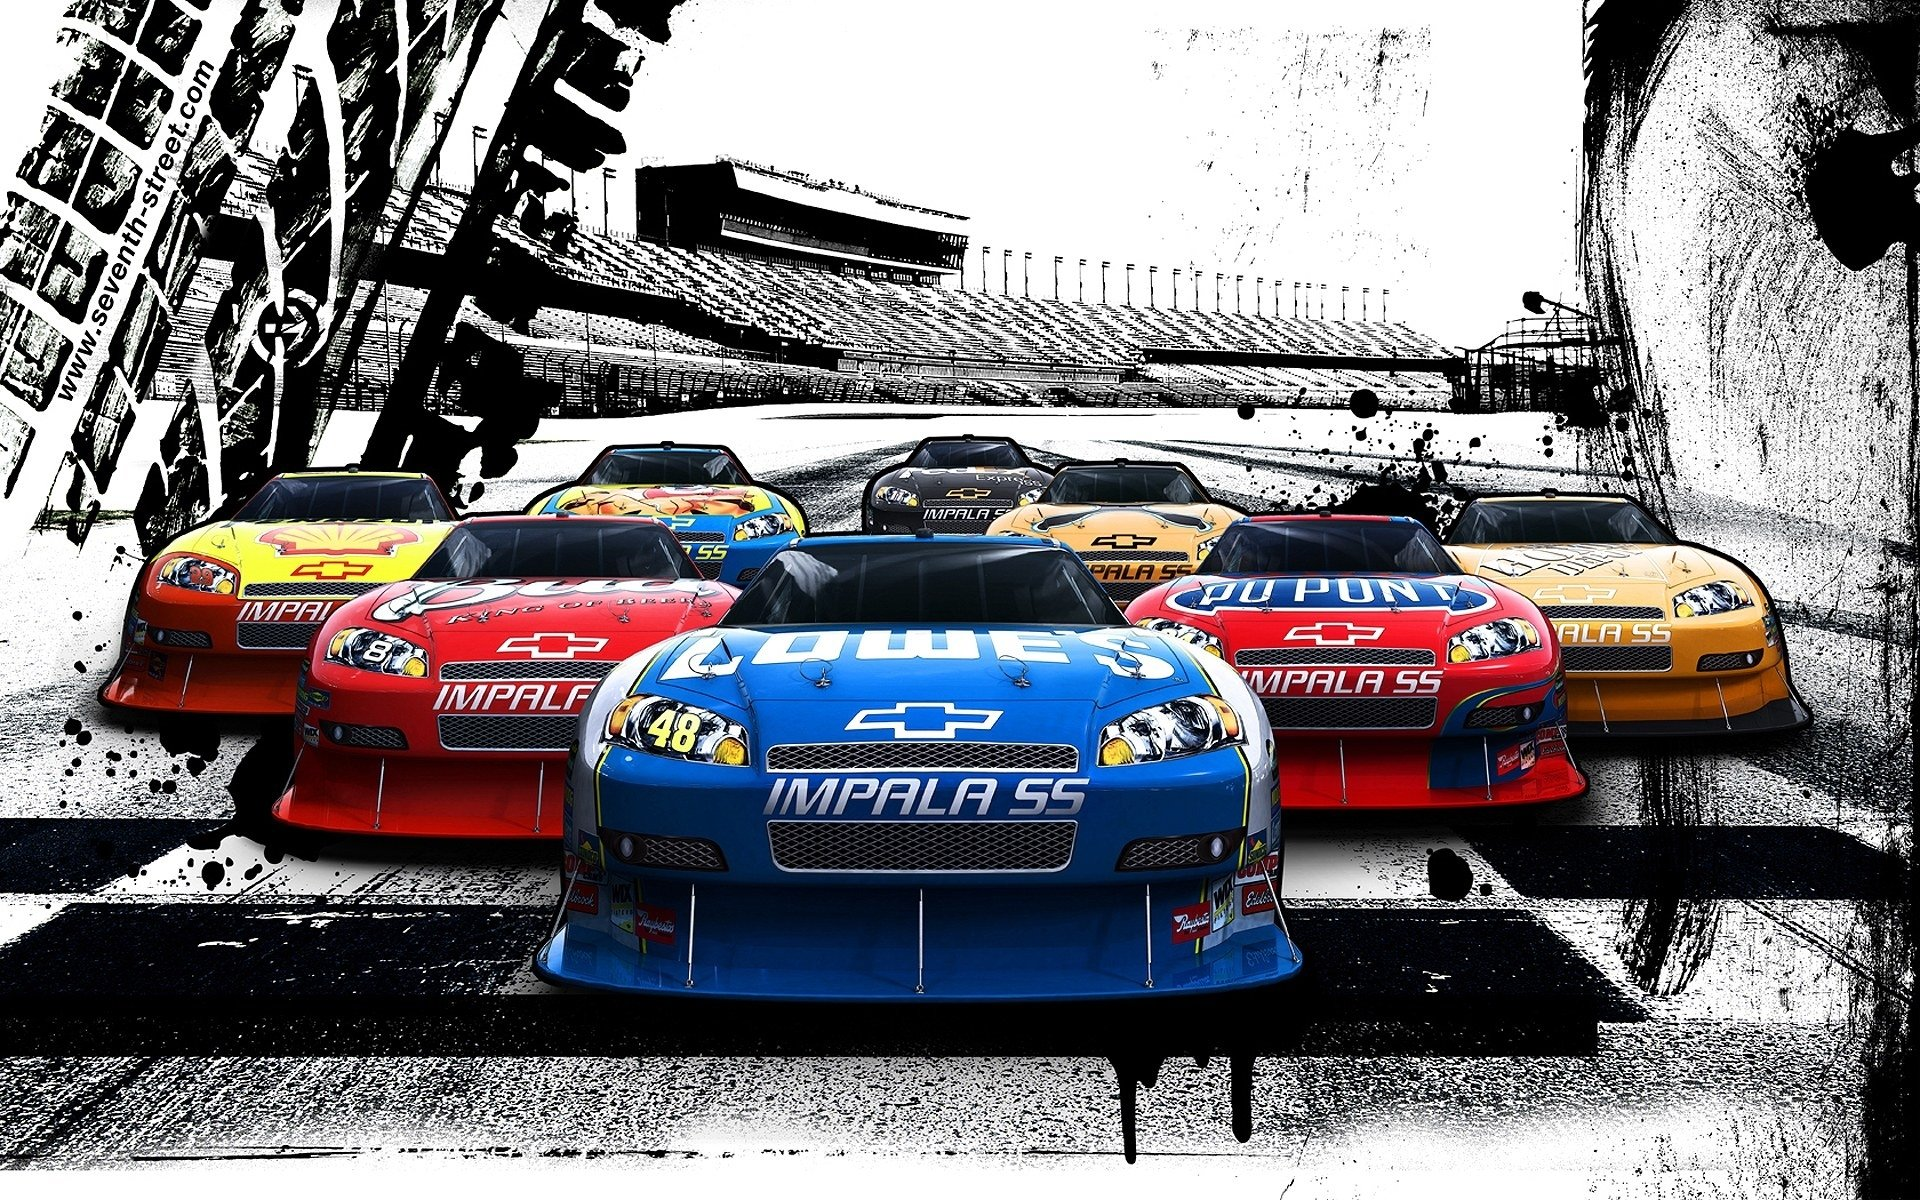 Nascar hd wallpaper background image 1920x1200 id - Nascar wallpaper ...